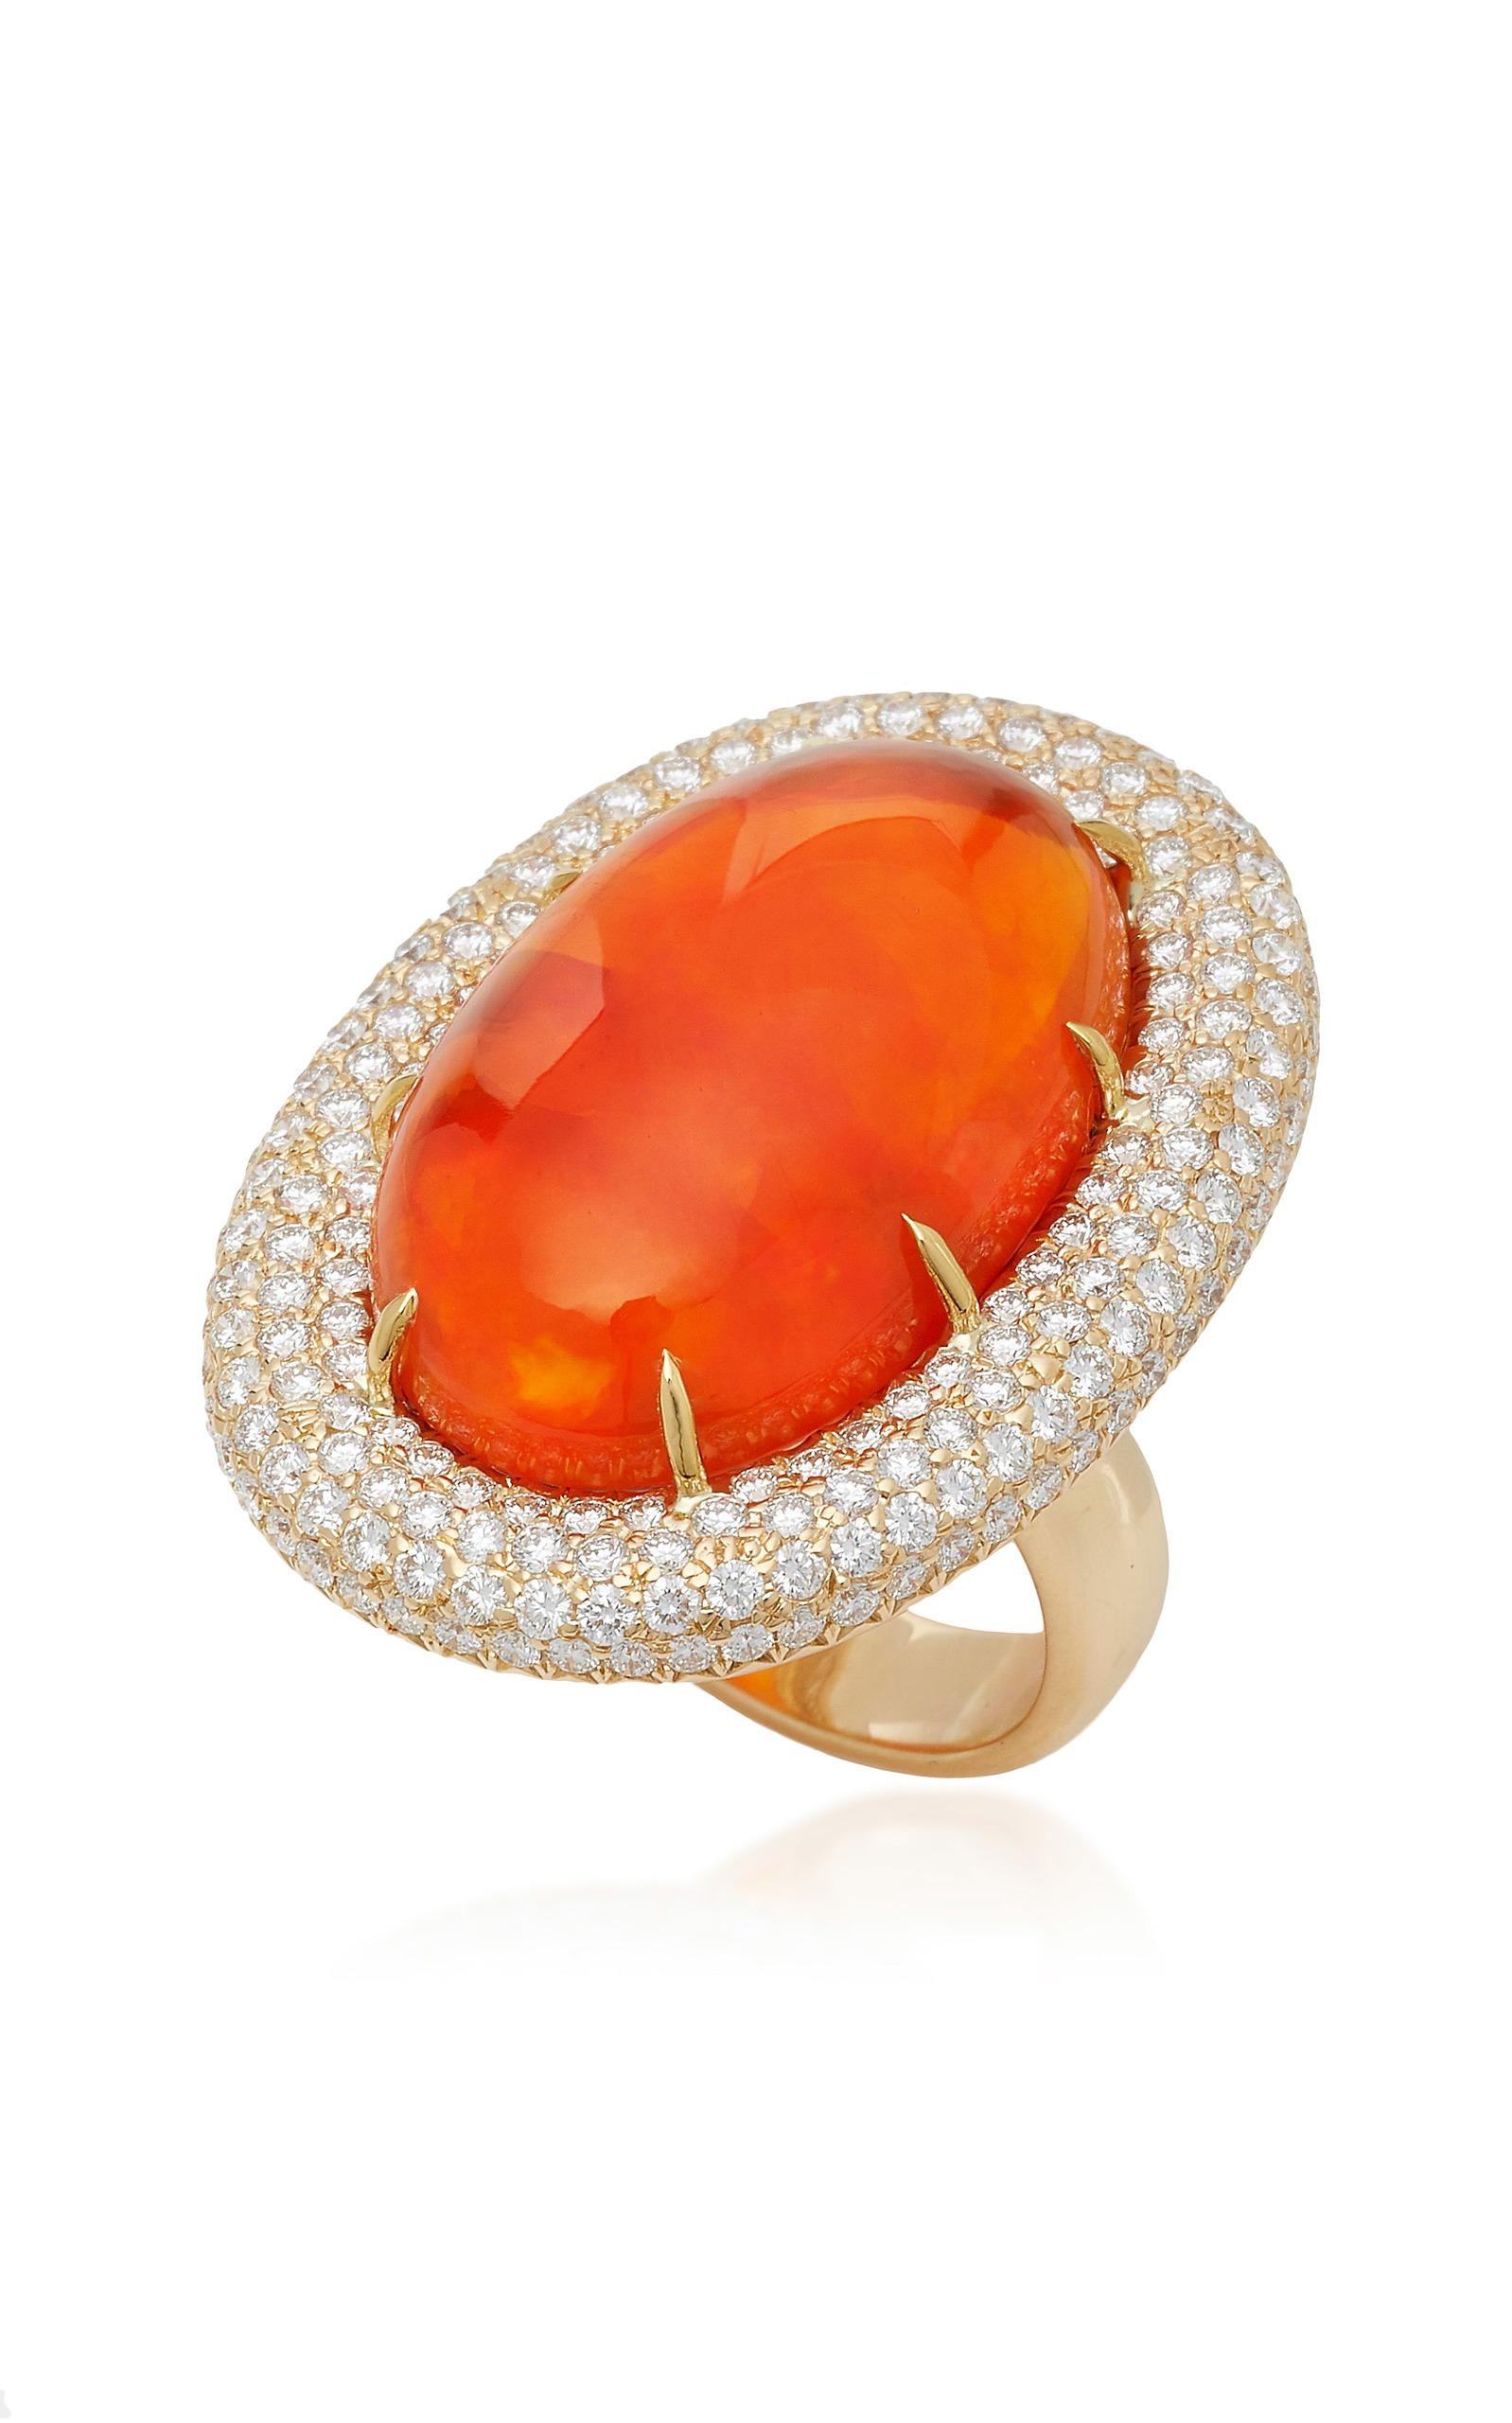 Orange Mexican Fire Opal Ring